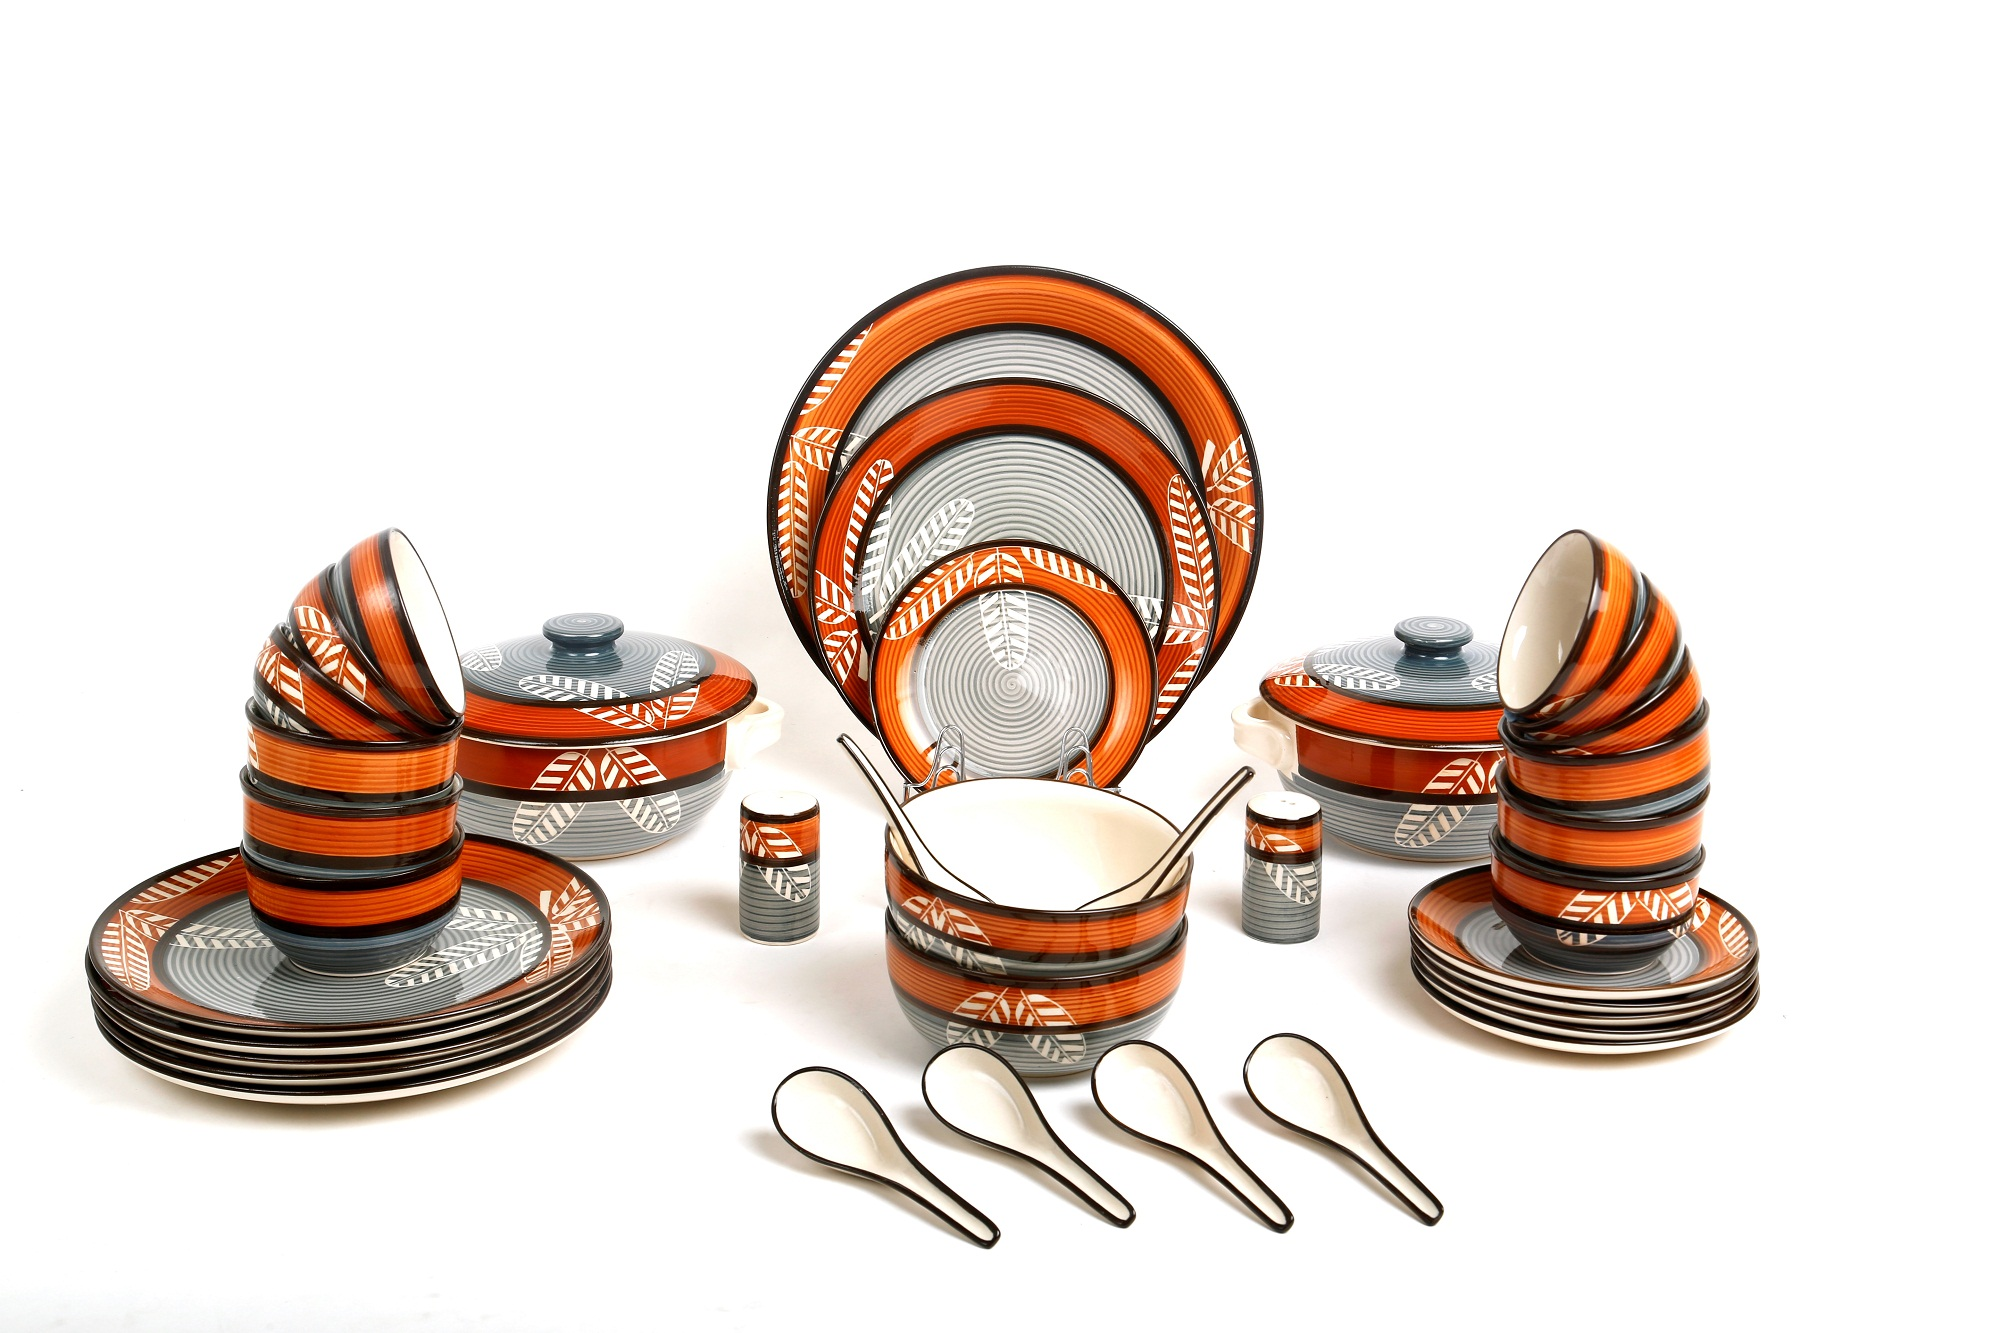 Caffeine Ceramic Handmade Leaf Print Engraved Orange and Black Dinner Set at shopclues